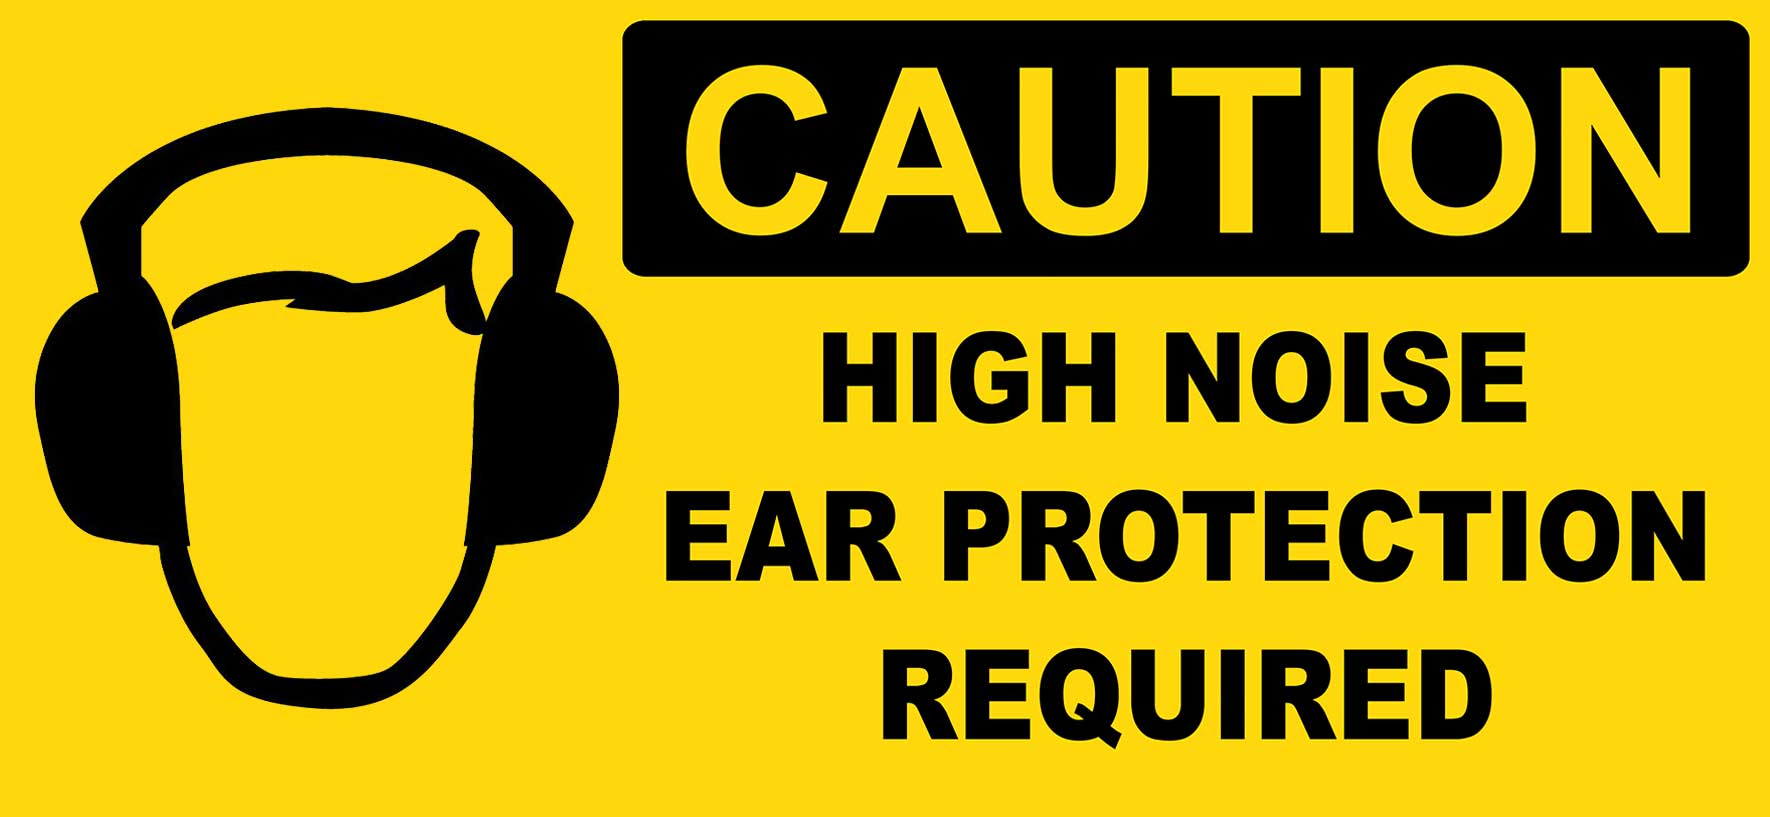 Safety First! Wear ear protection during sound test